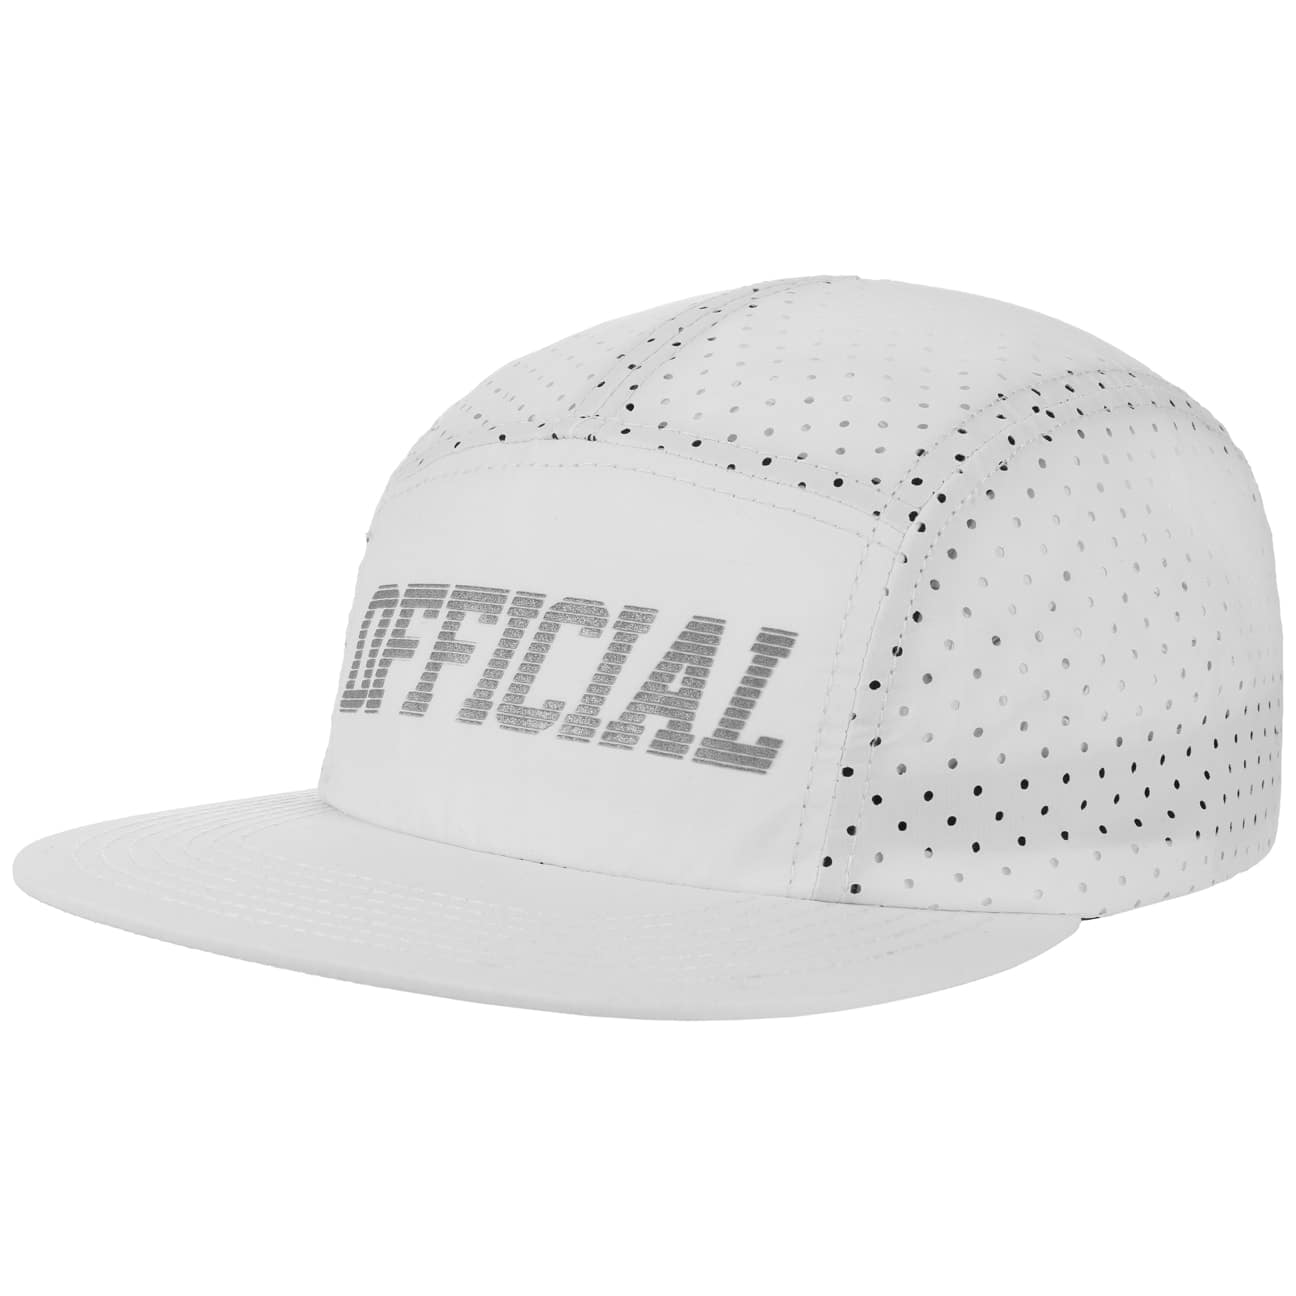 Gorra Aero Strapback by Official Headwear  gorra de baseball